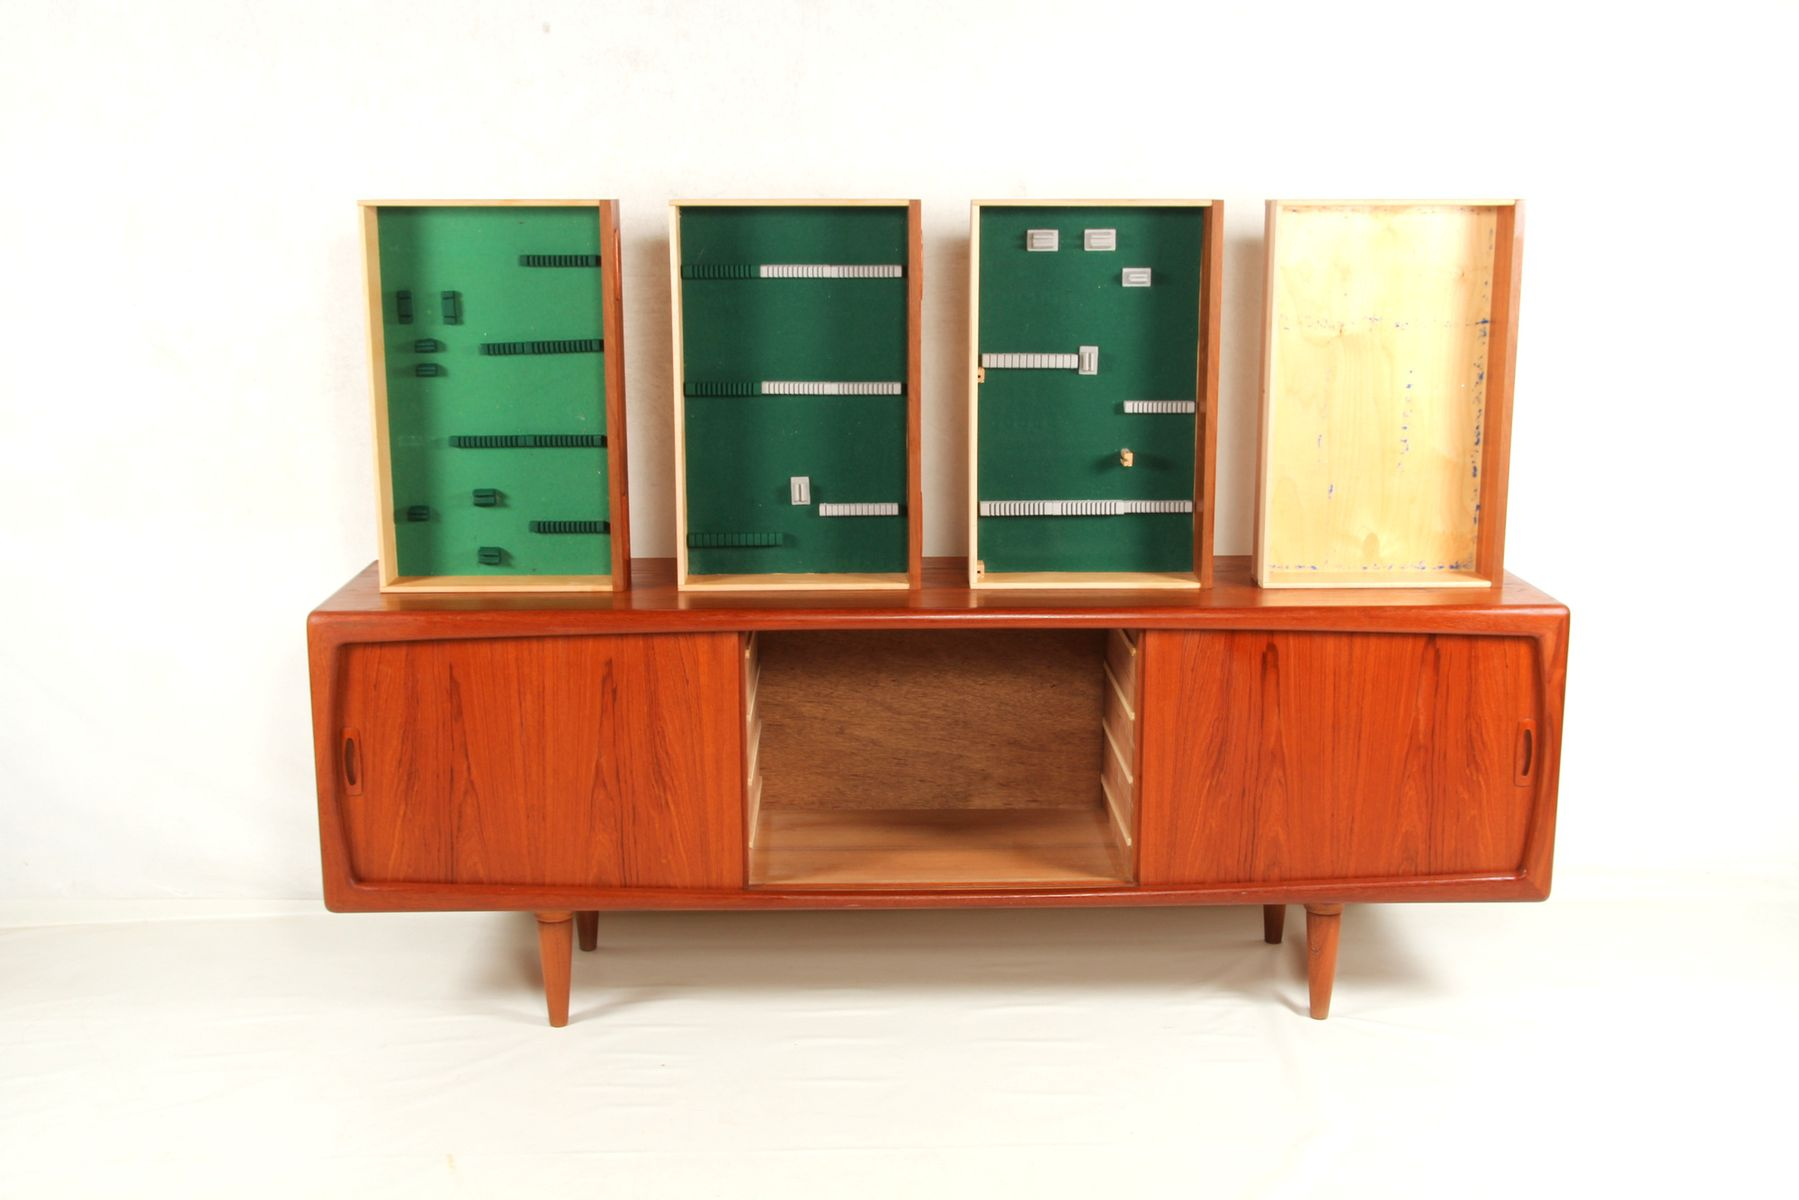 sideboard by h p hansen 1960s for sale at pamono. Black Bedroom Furniture Sets. Home Design Ideas